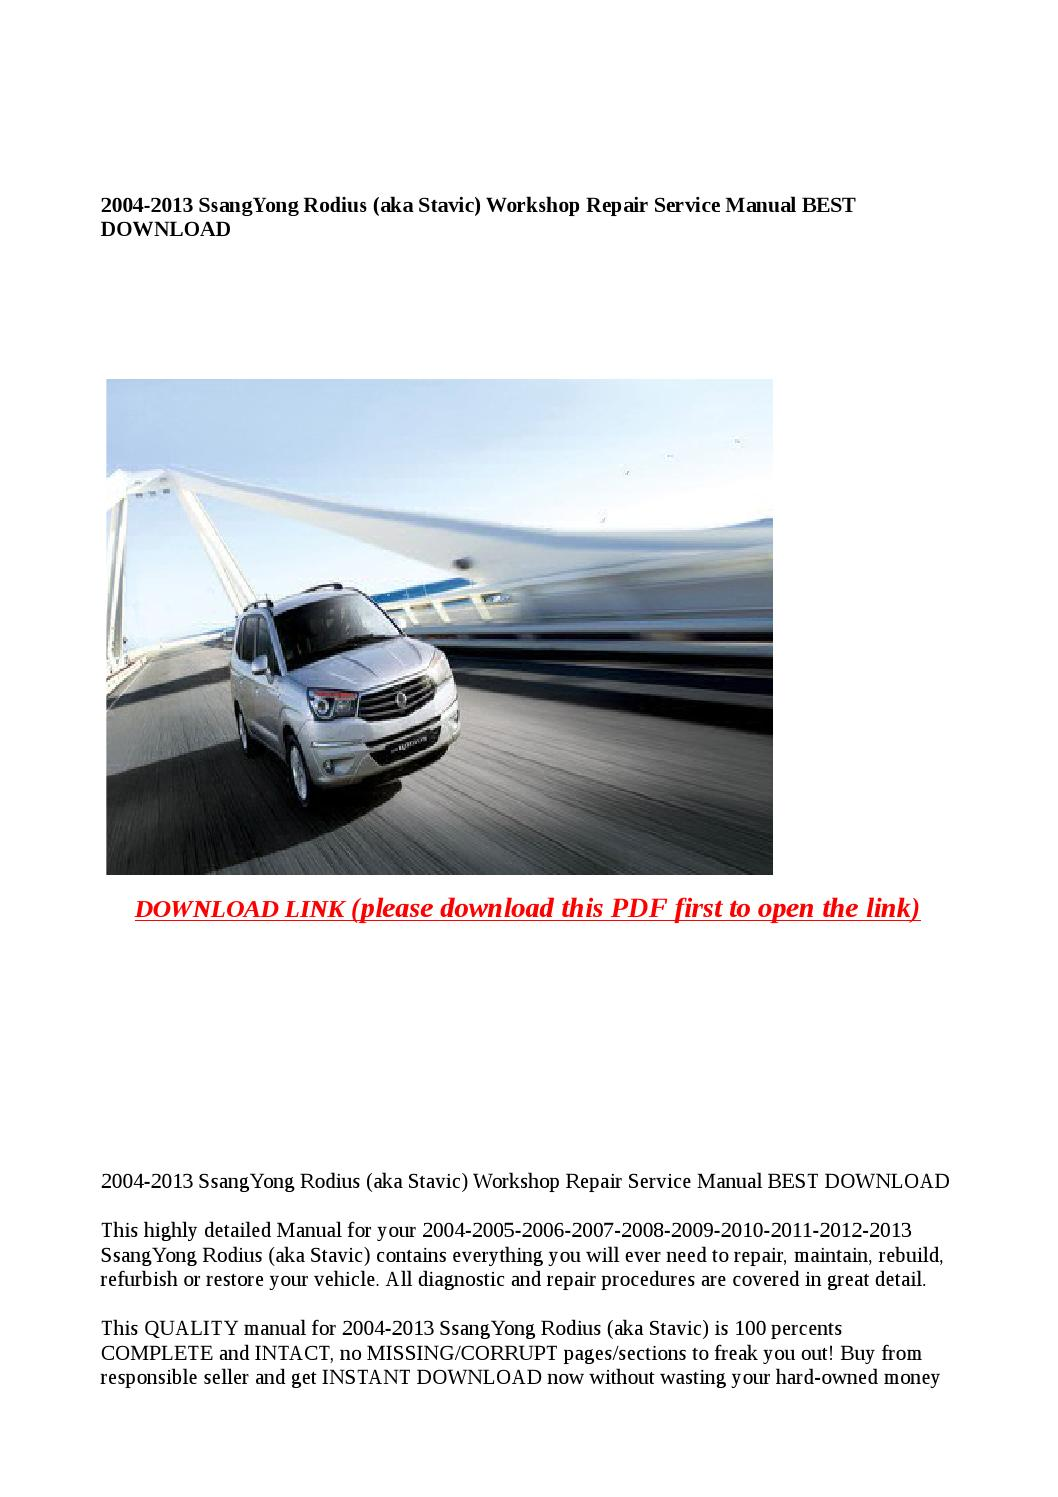 free ssangyong stavic workshop manual